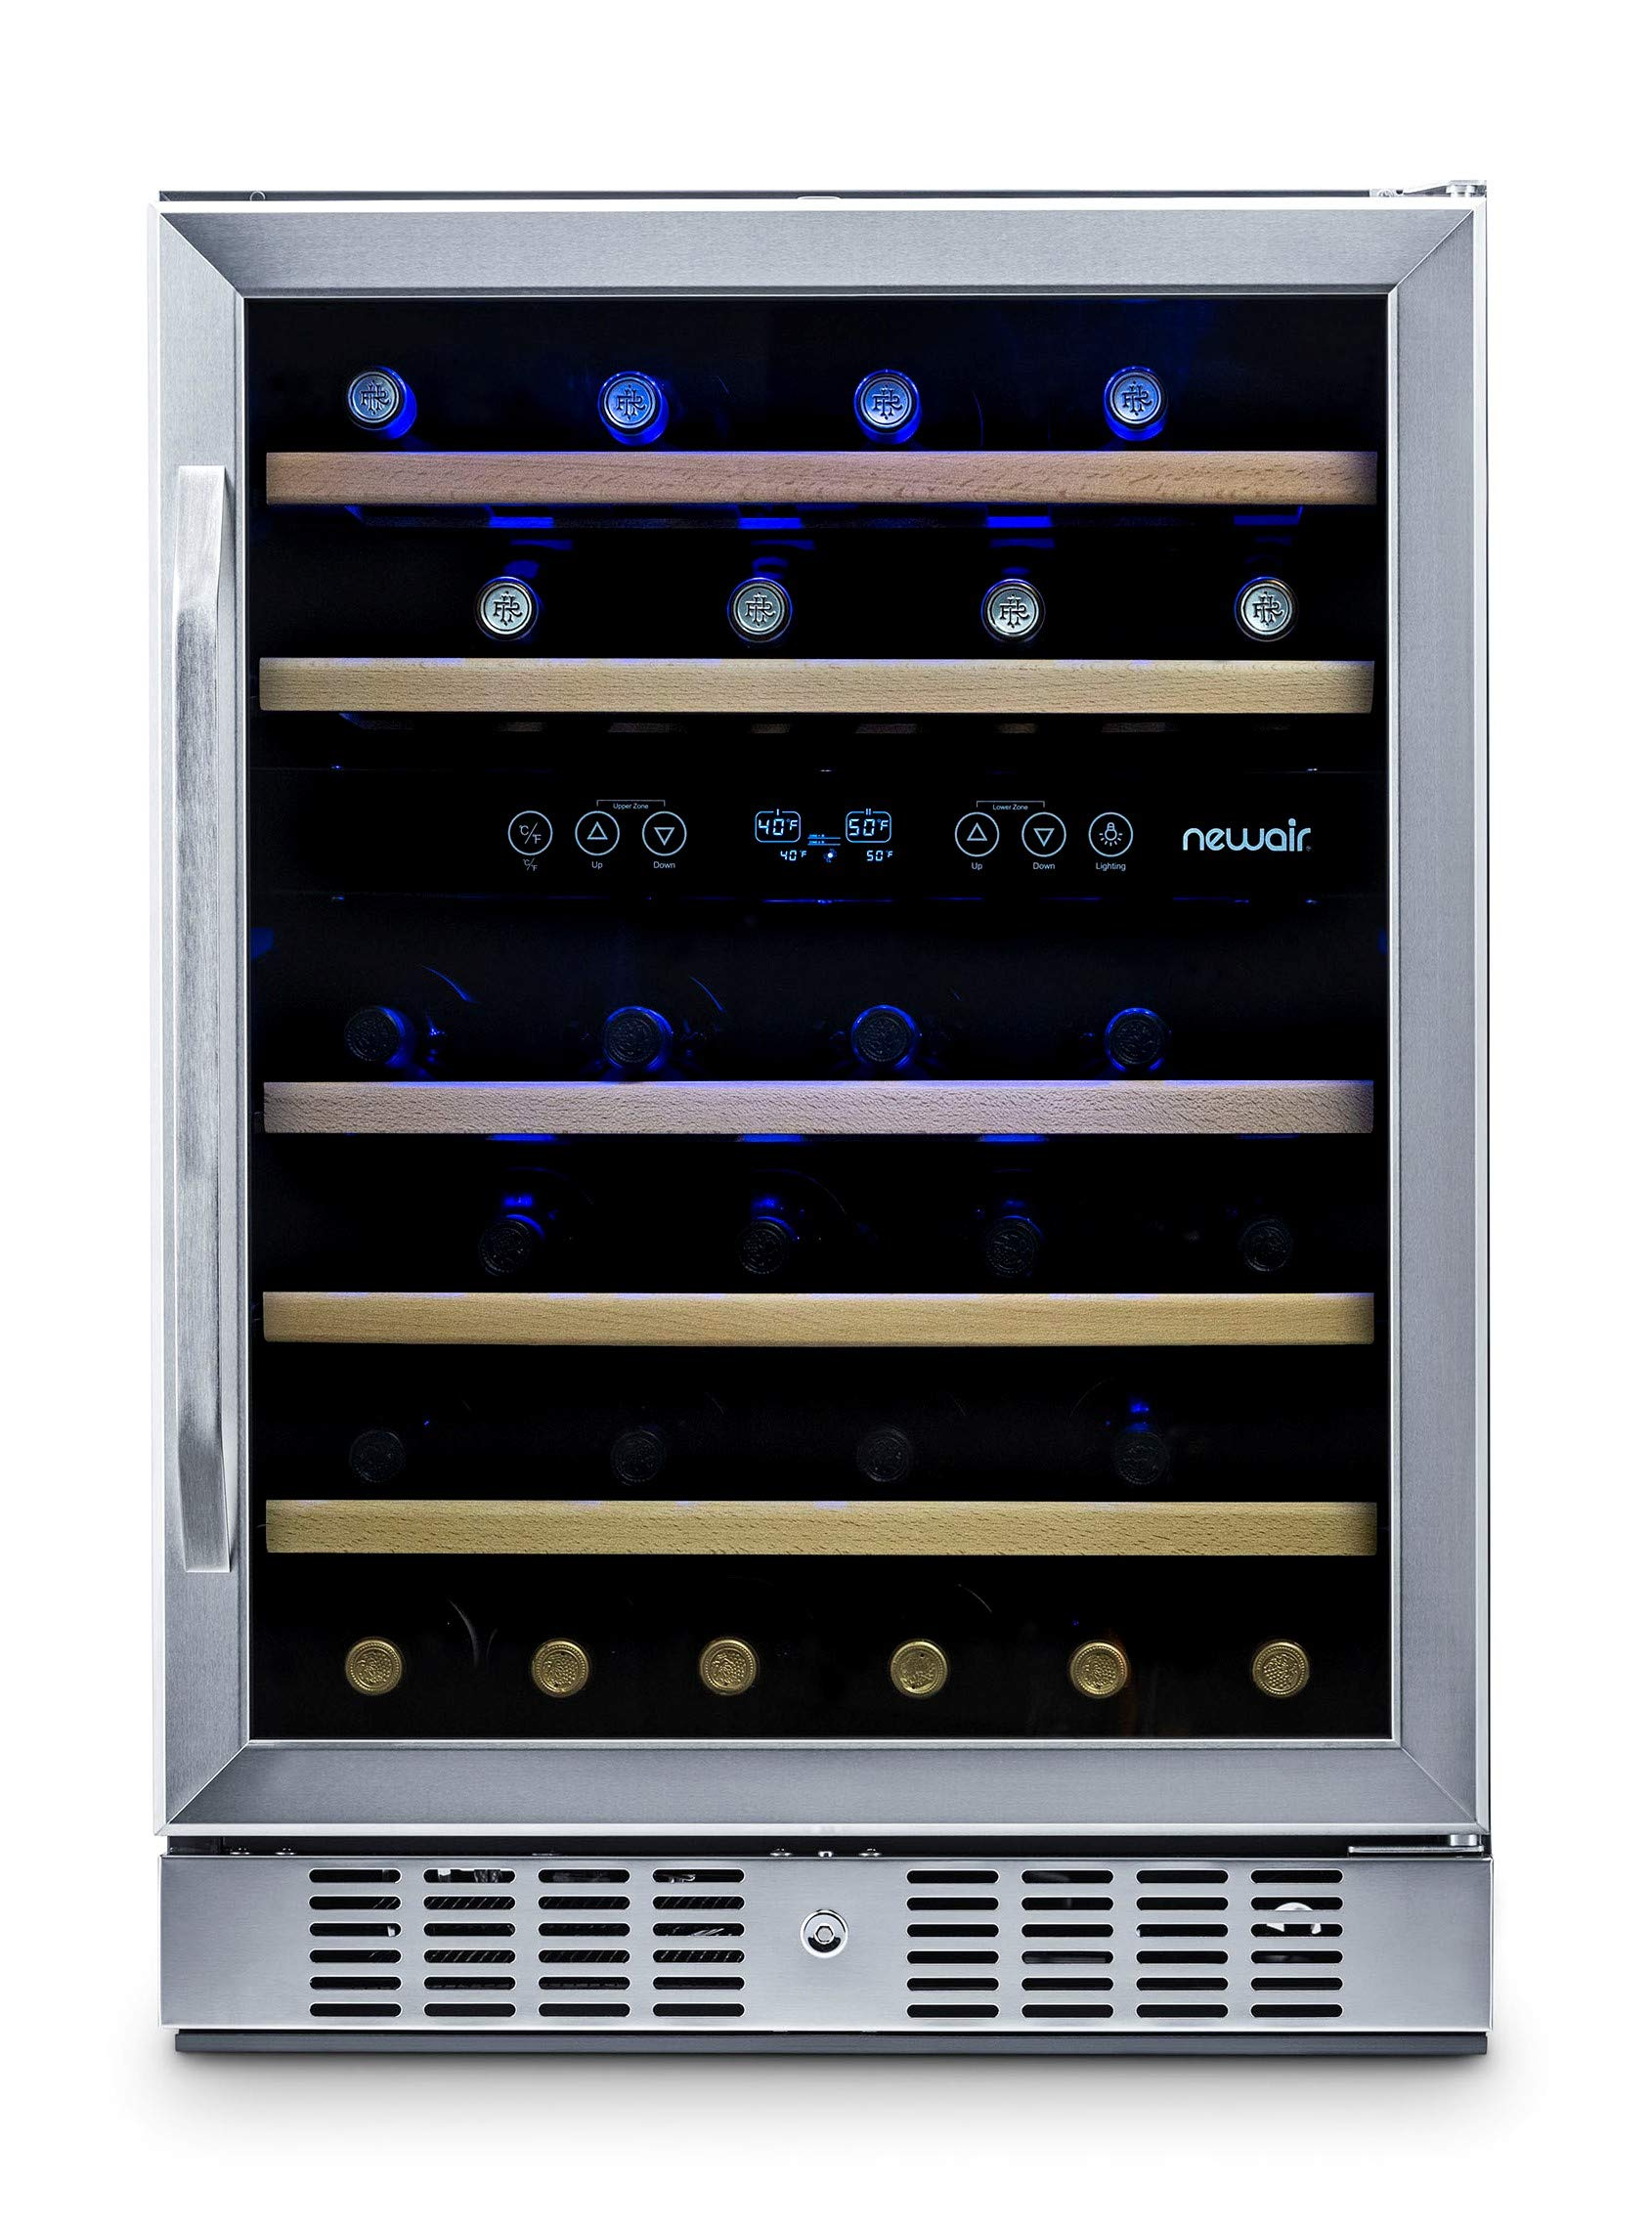 NewAir Built-In Wine Cooler and Refrigerator, Dual Zone 46 Bottle Capcity Fridge with Triple-Layer Tempered Glass Door, AWR-460DB by NewAir